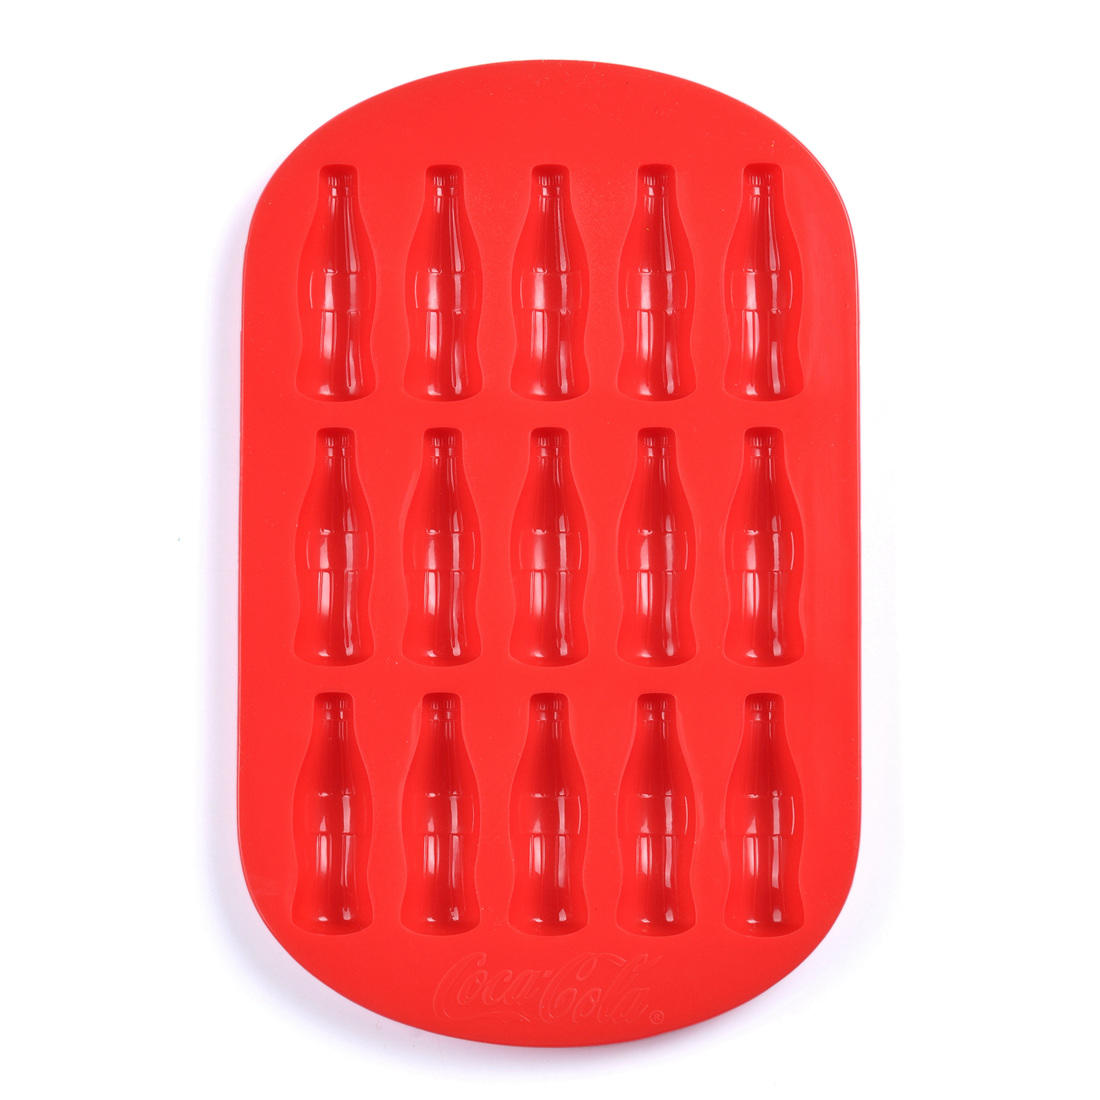 BSCI Factory Food grade Coca cola bottle shape silicone ice cube trays ice mold for promotional gift